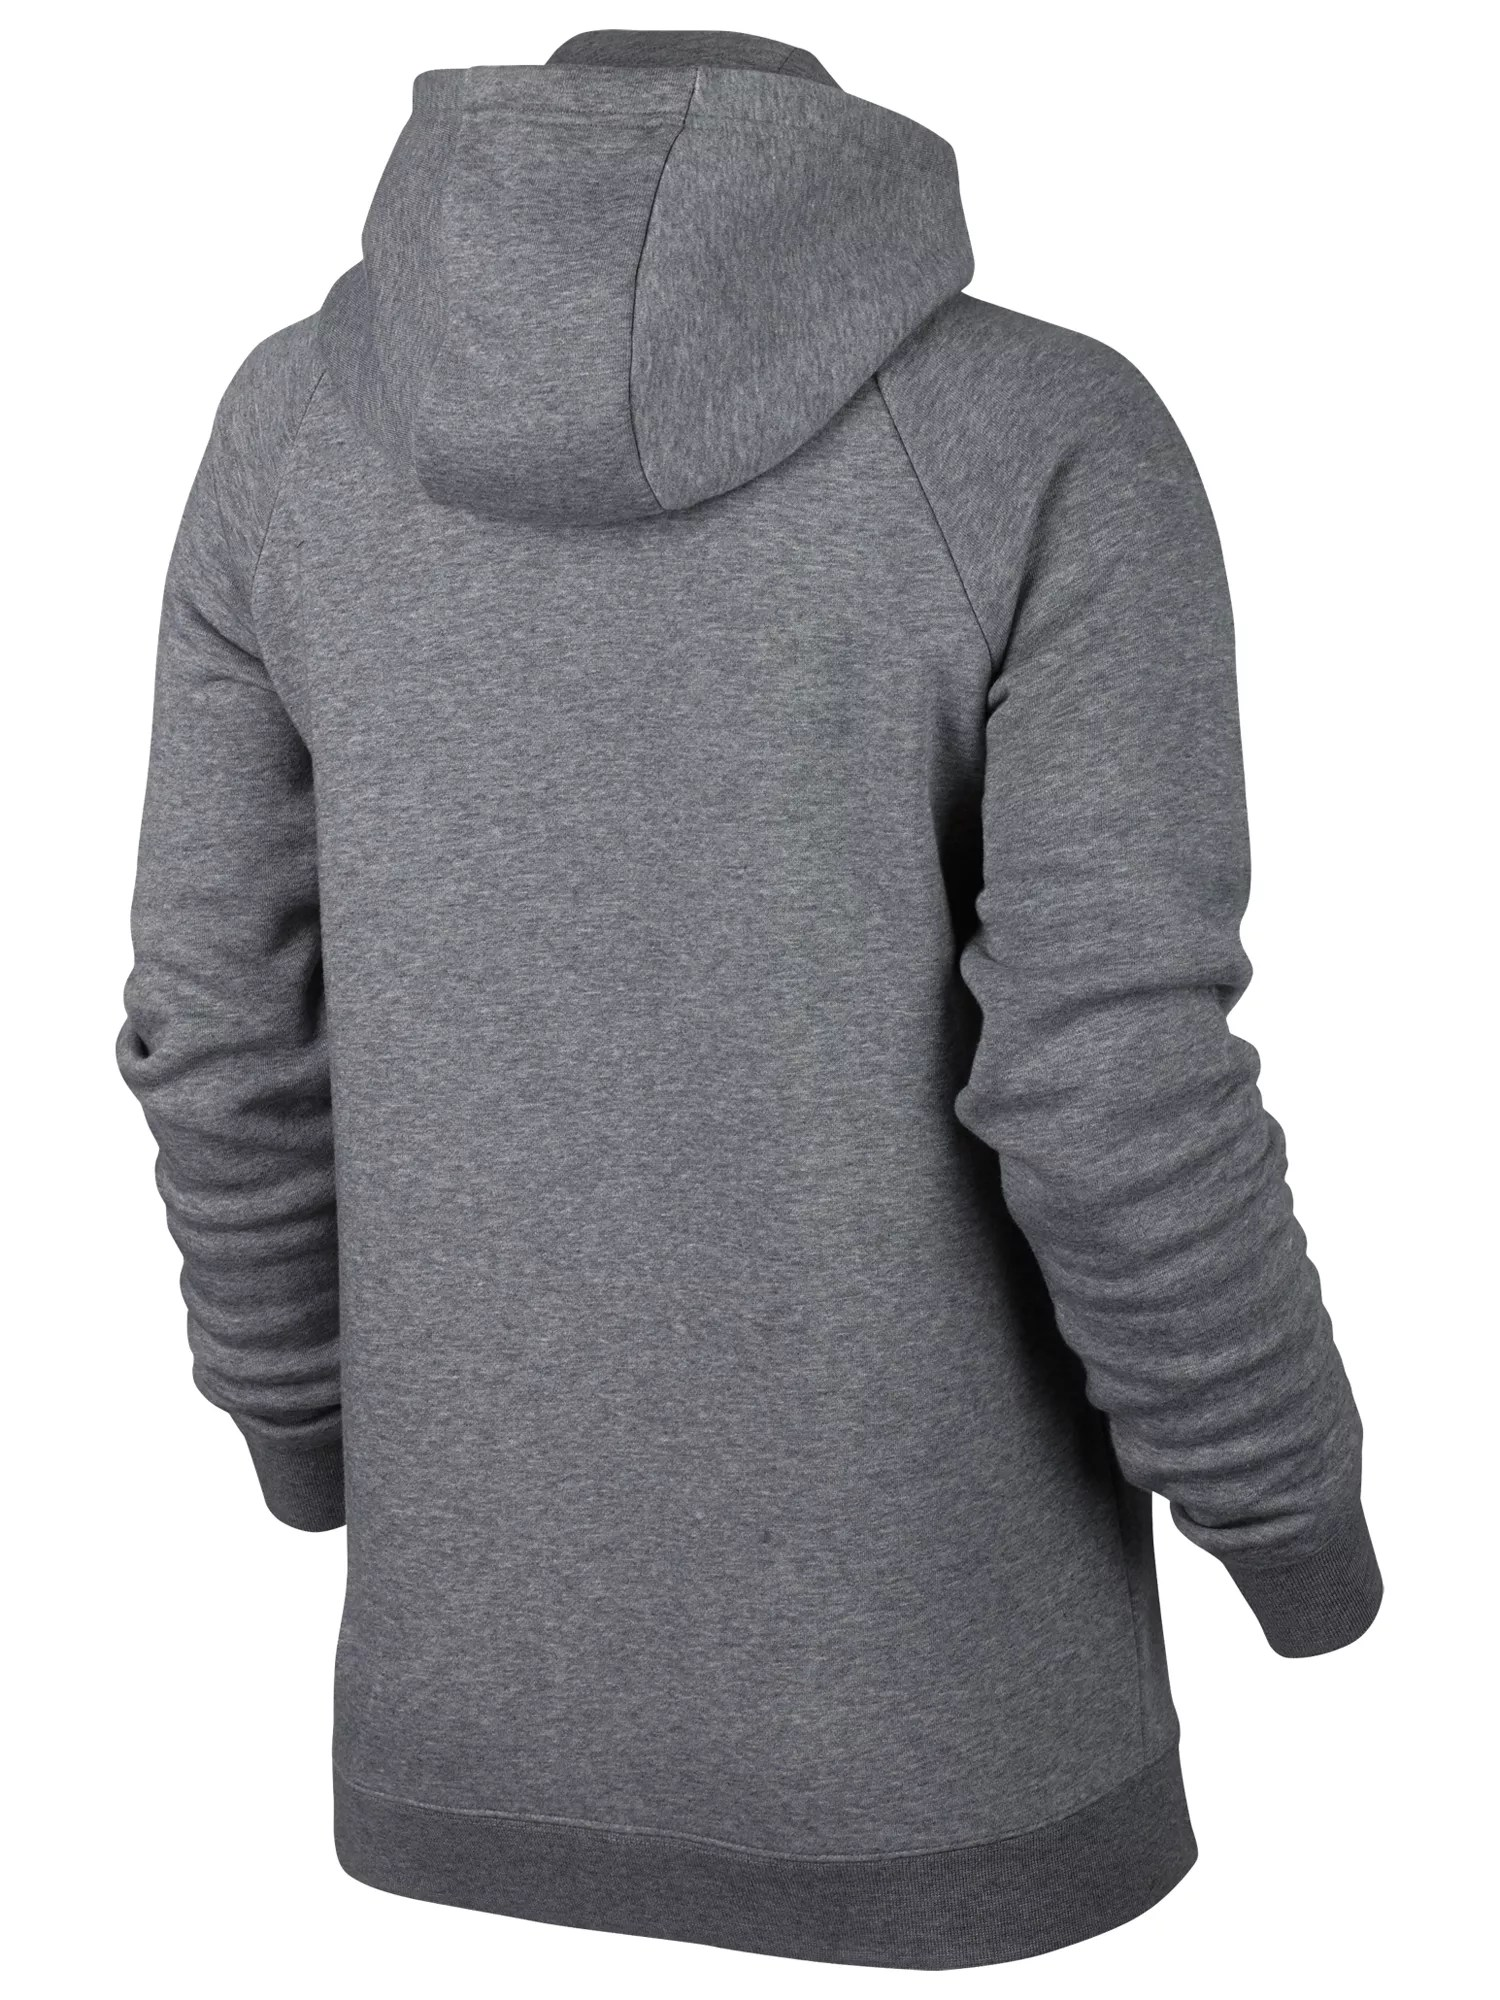 Nike Hoodie Carbon Heather Nike Sportswear Full Zip Rally Hoodie At John Lewis Partners